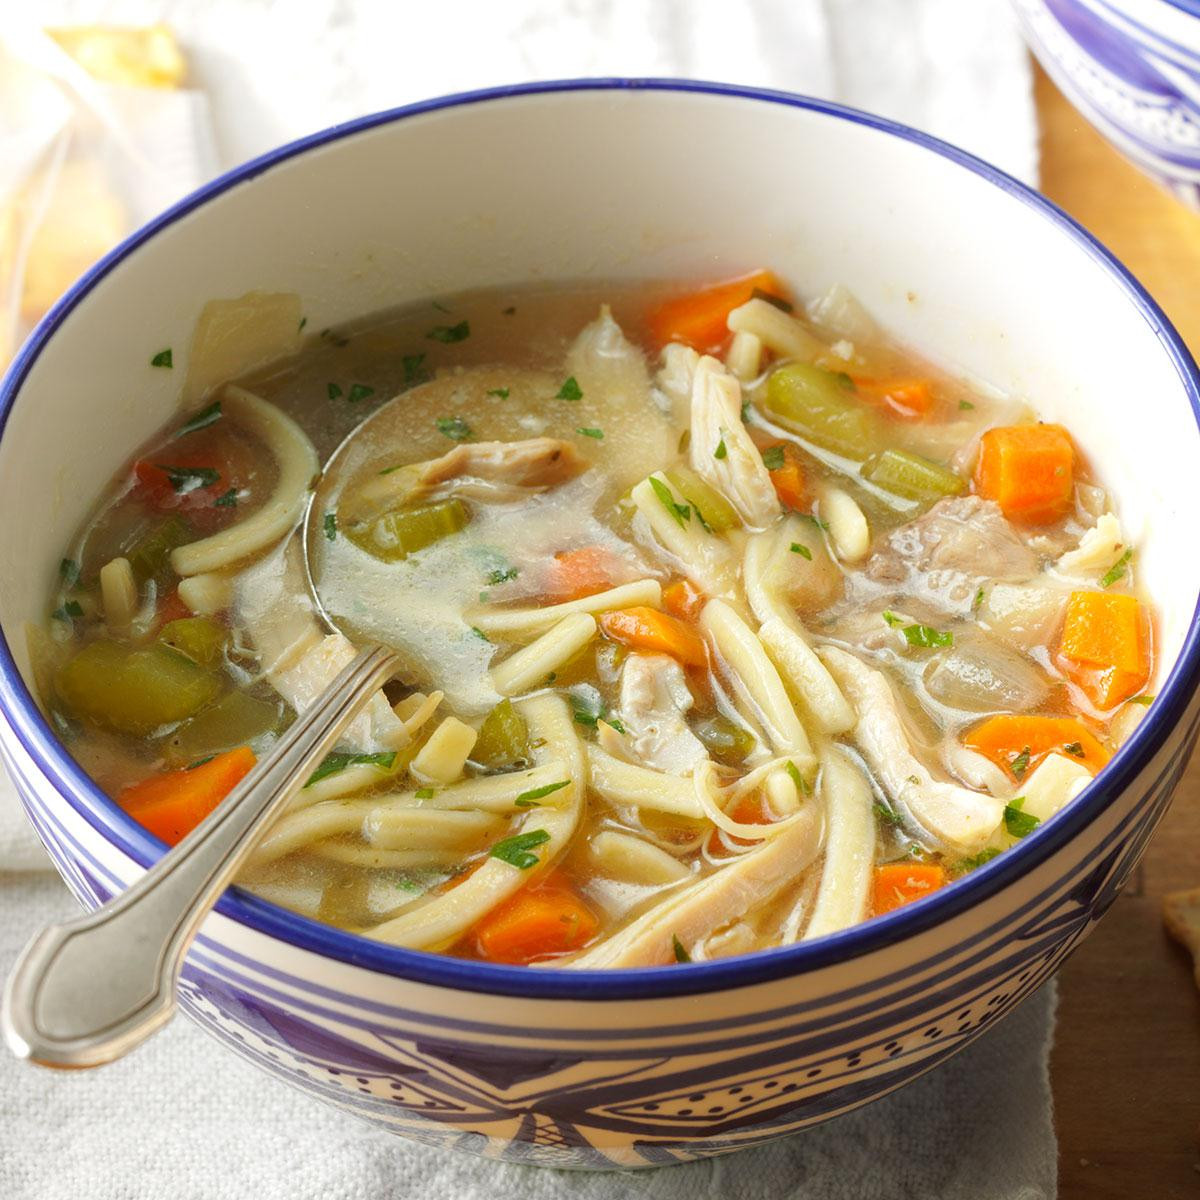 Chicken Noodles Recipe  The Ultimate Chicken Noodle Soup Recipe